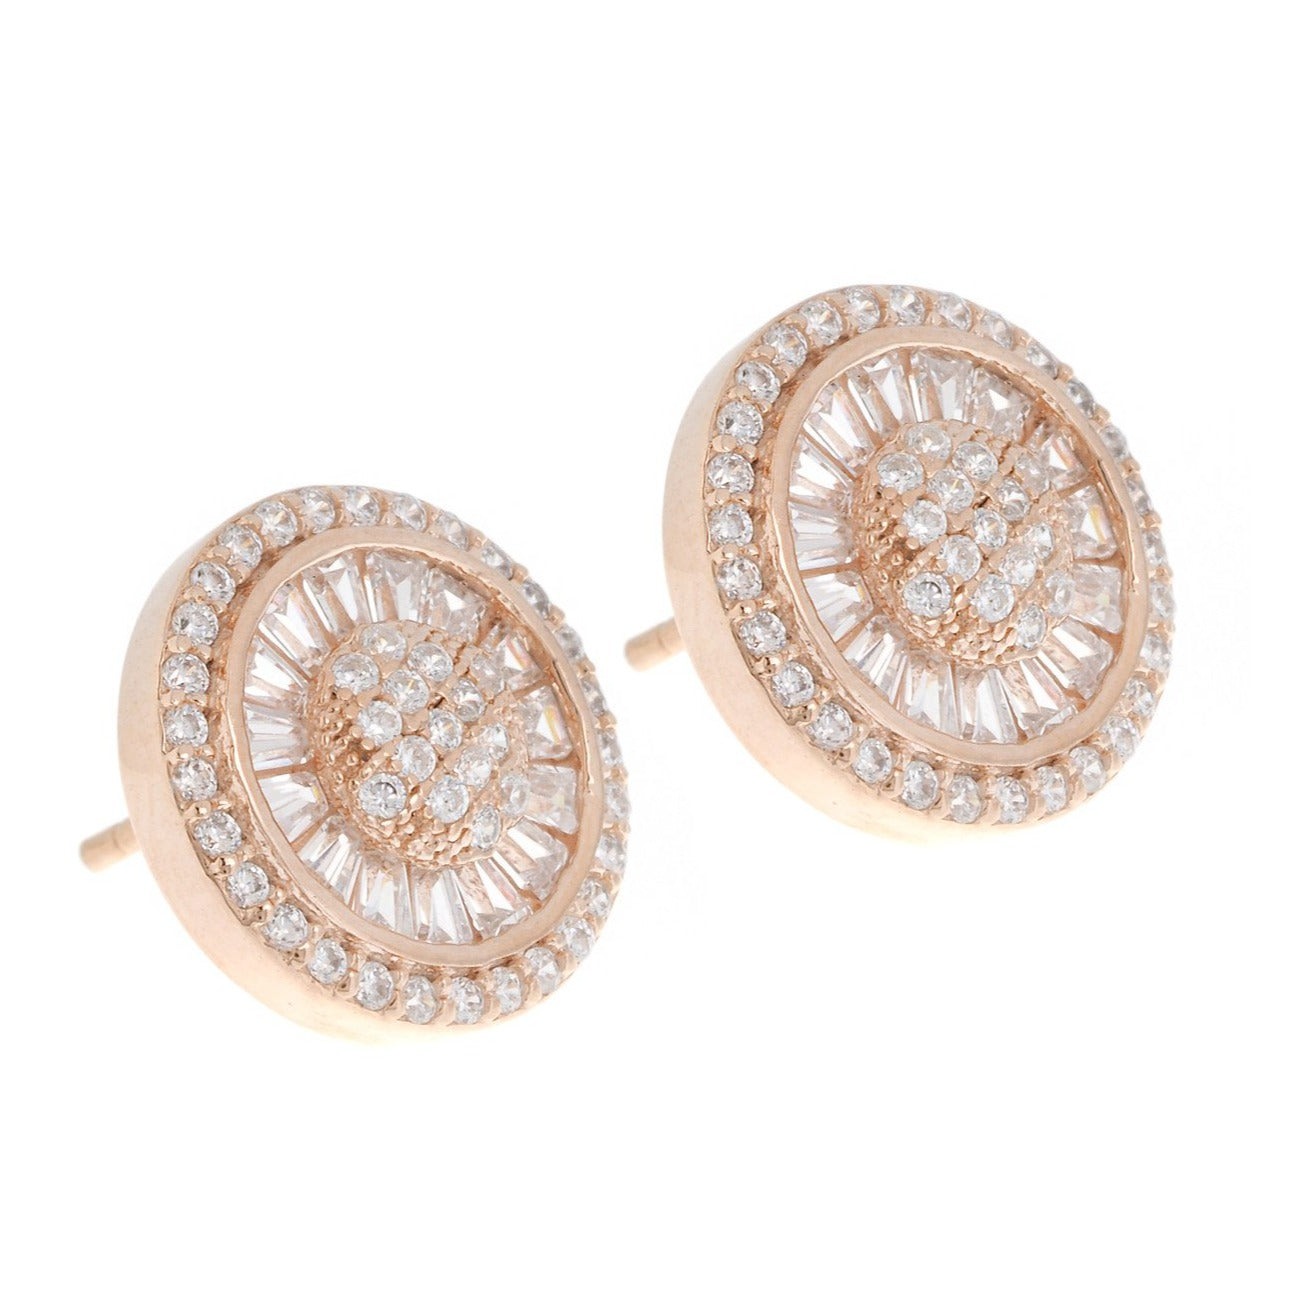 Rose Gold Plated Sterling Silver Cubic Zirconia Earrings, Minar Jewellers - 2